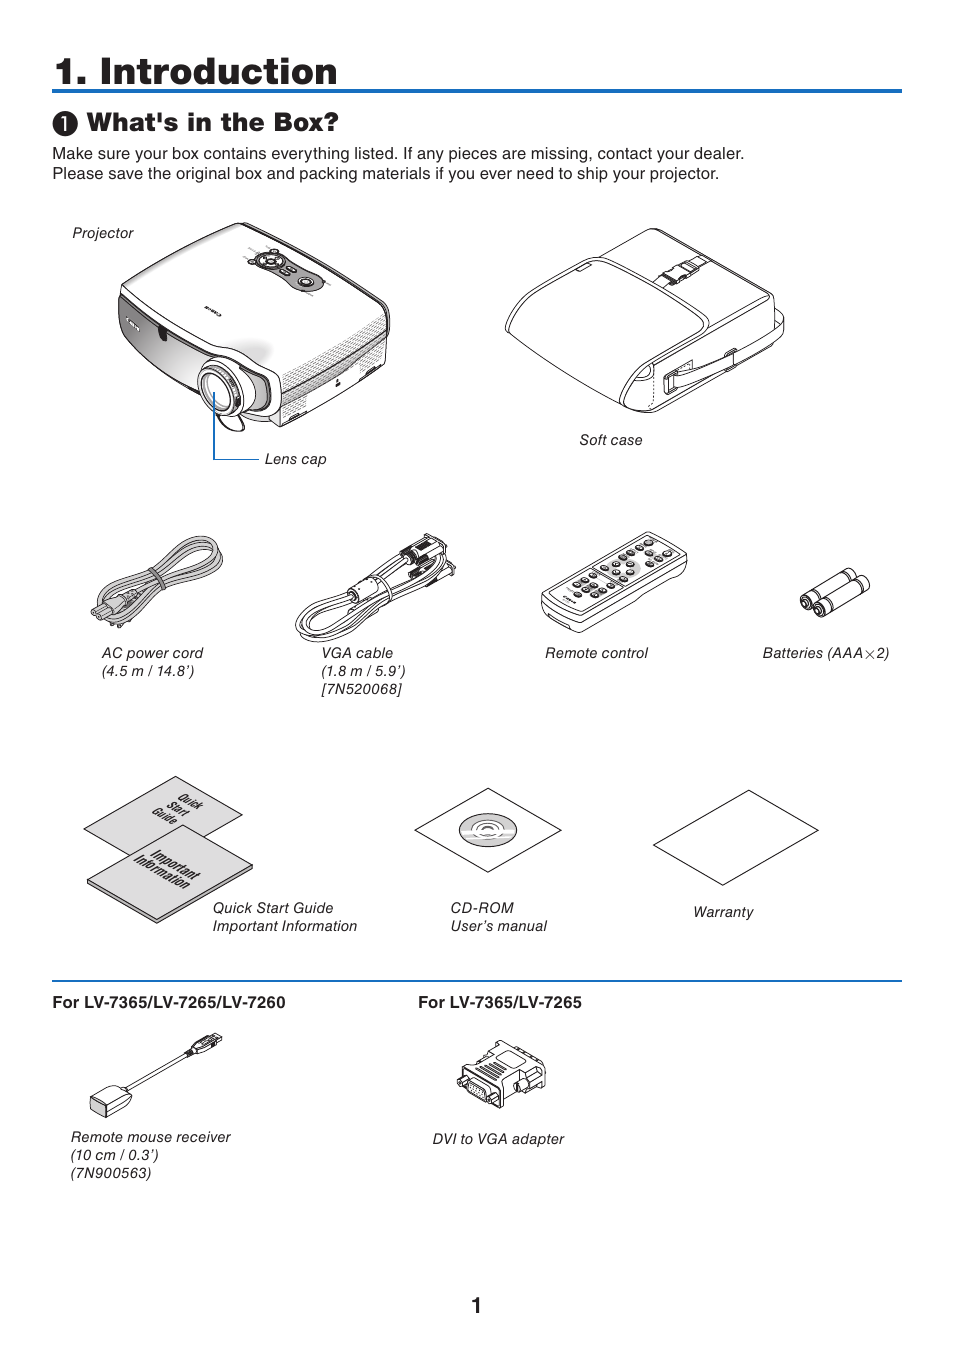 Introduction, What's in the box, Important information   Canon LV 7365 User  Manual   Page 10 / 83